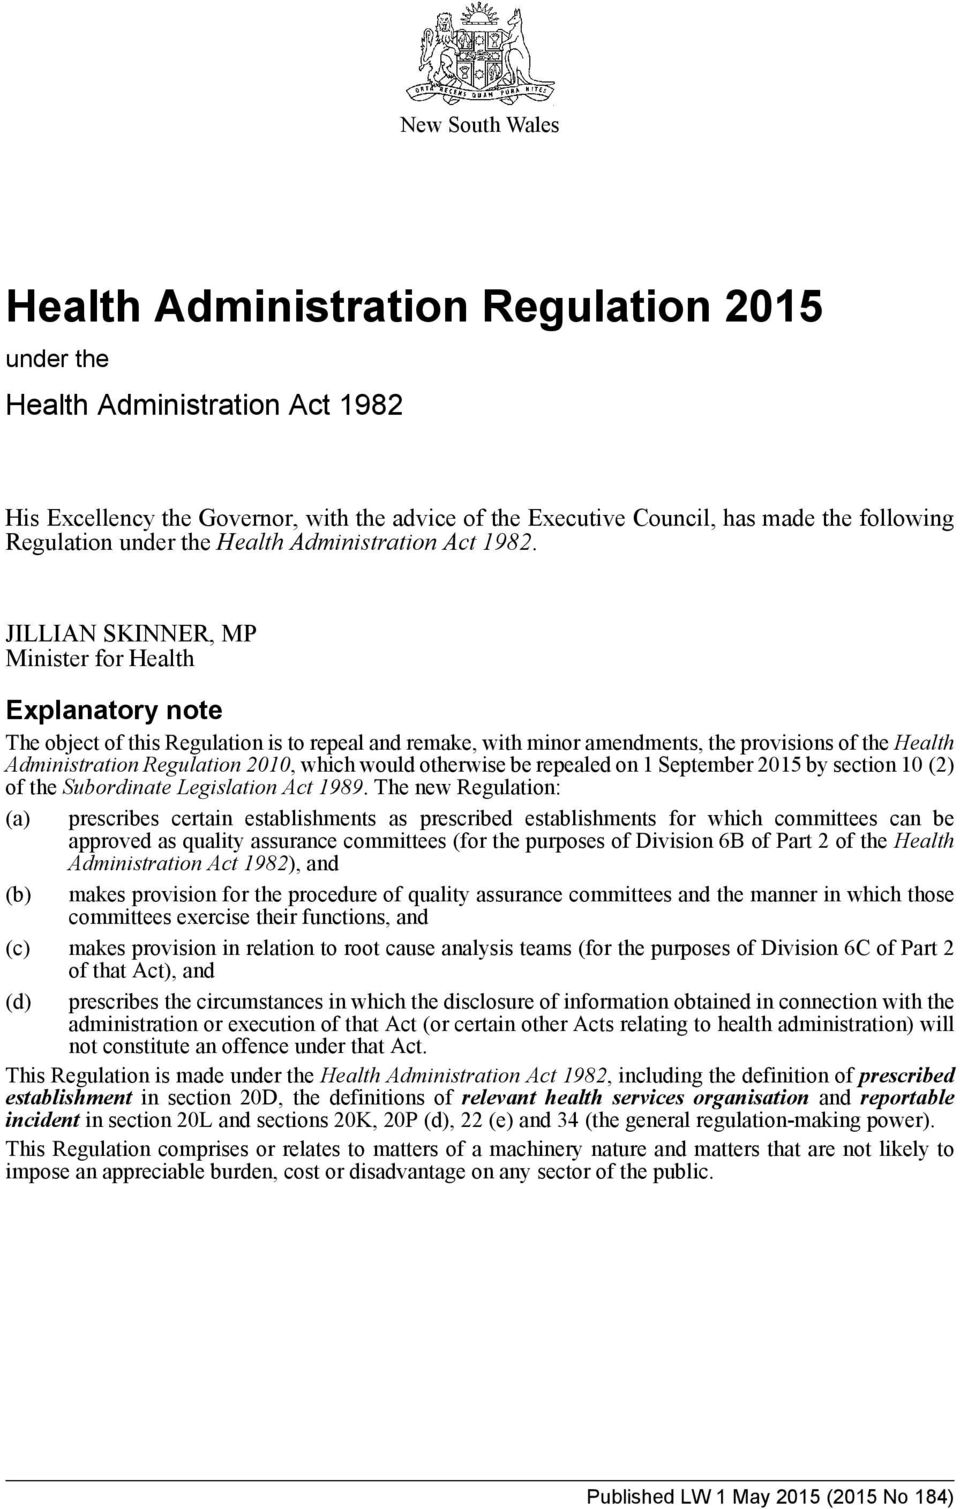 JILLIAN SKINNER, MP Minister for Health Explanatory note The object of this Regulation is to repeal and remake, with minor amendments, the provisions of the Health Administration Regulation 2010,